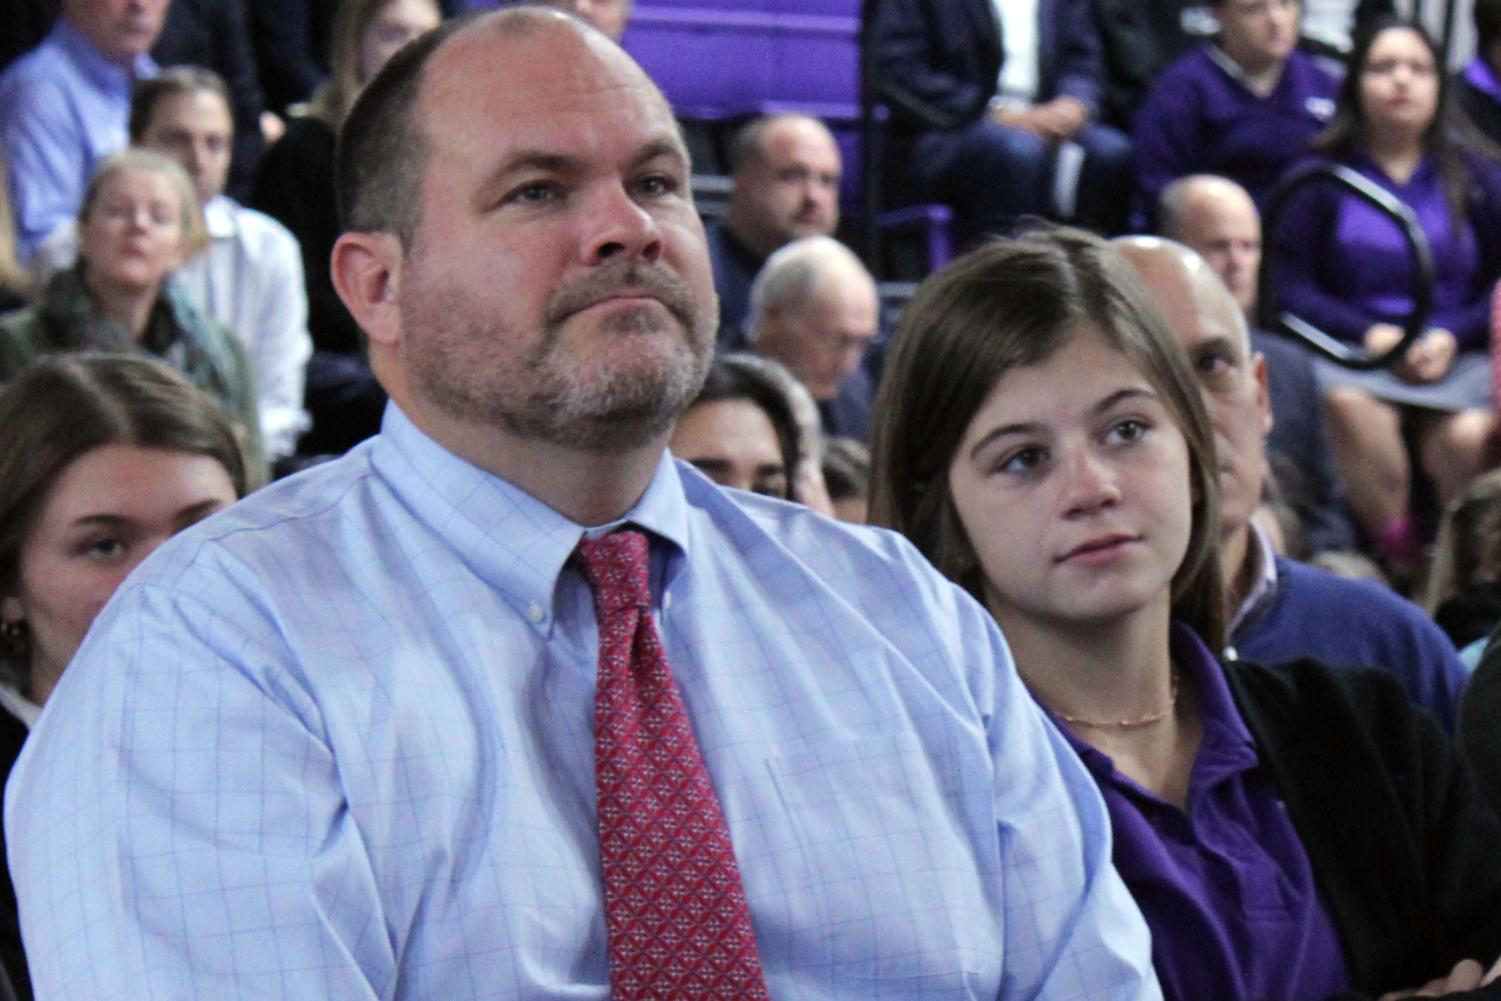 Sophomore Byrnna Dow and her dad Peter Dow sit together at the annual Father-Daughter Mass Nov. 1 in the gym. Father's were invited to attend the Mass that happens each year on All Saints Day.